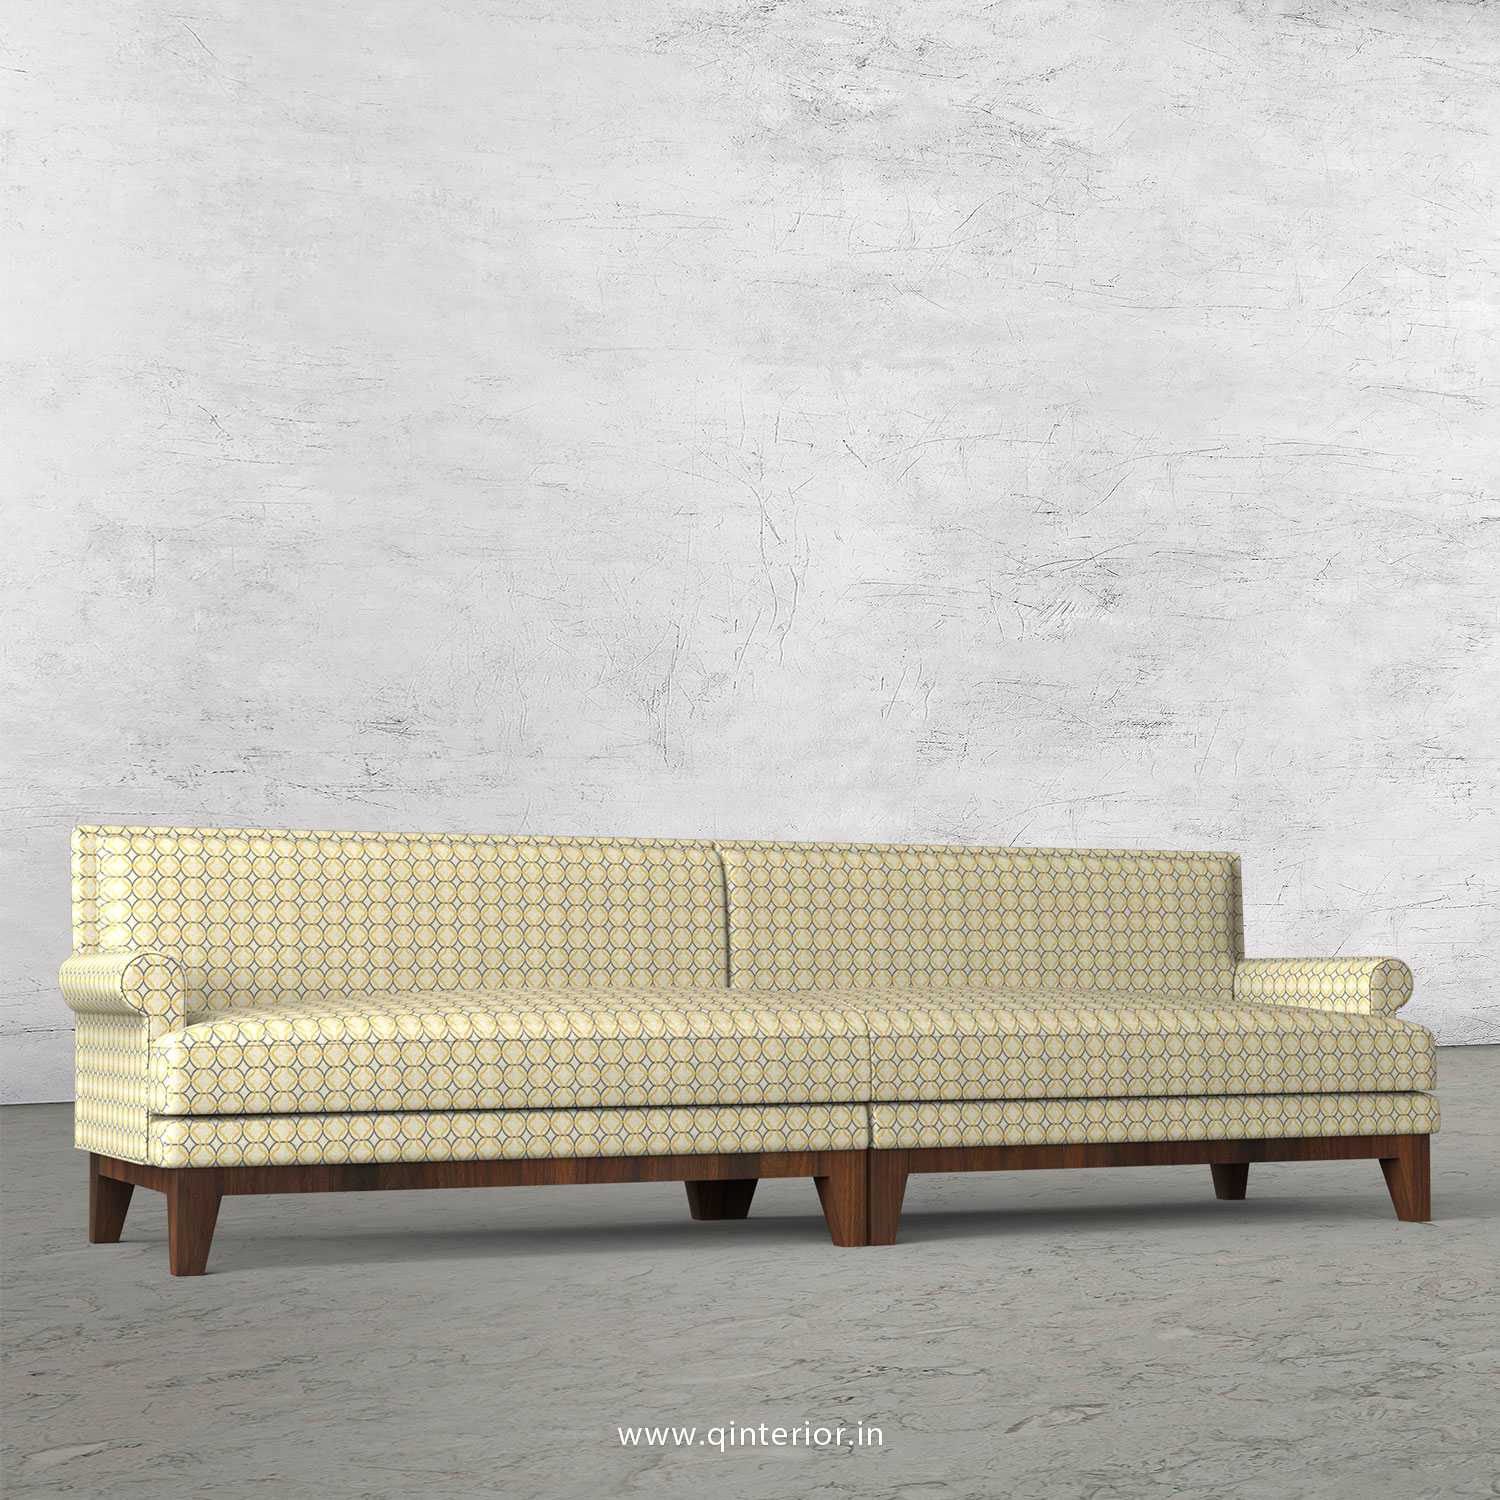 Aviana 4 Seater Sofa in Jacquard - SFA001 JQ30